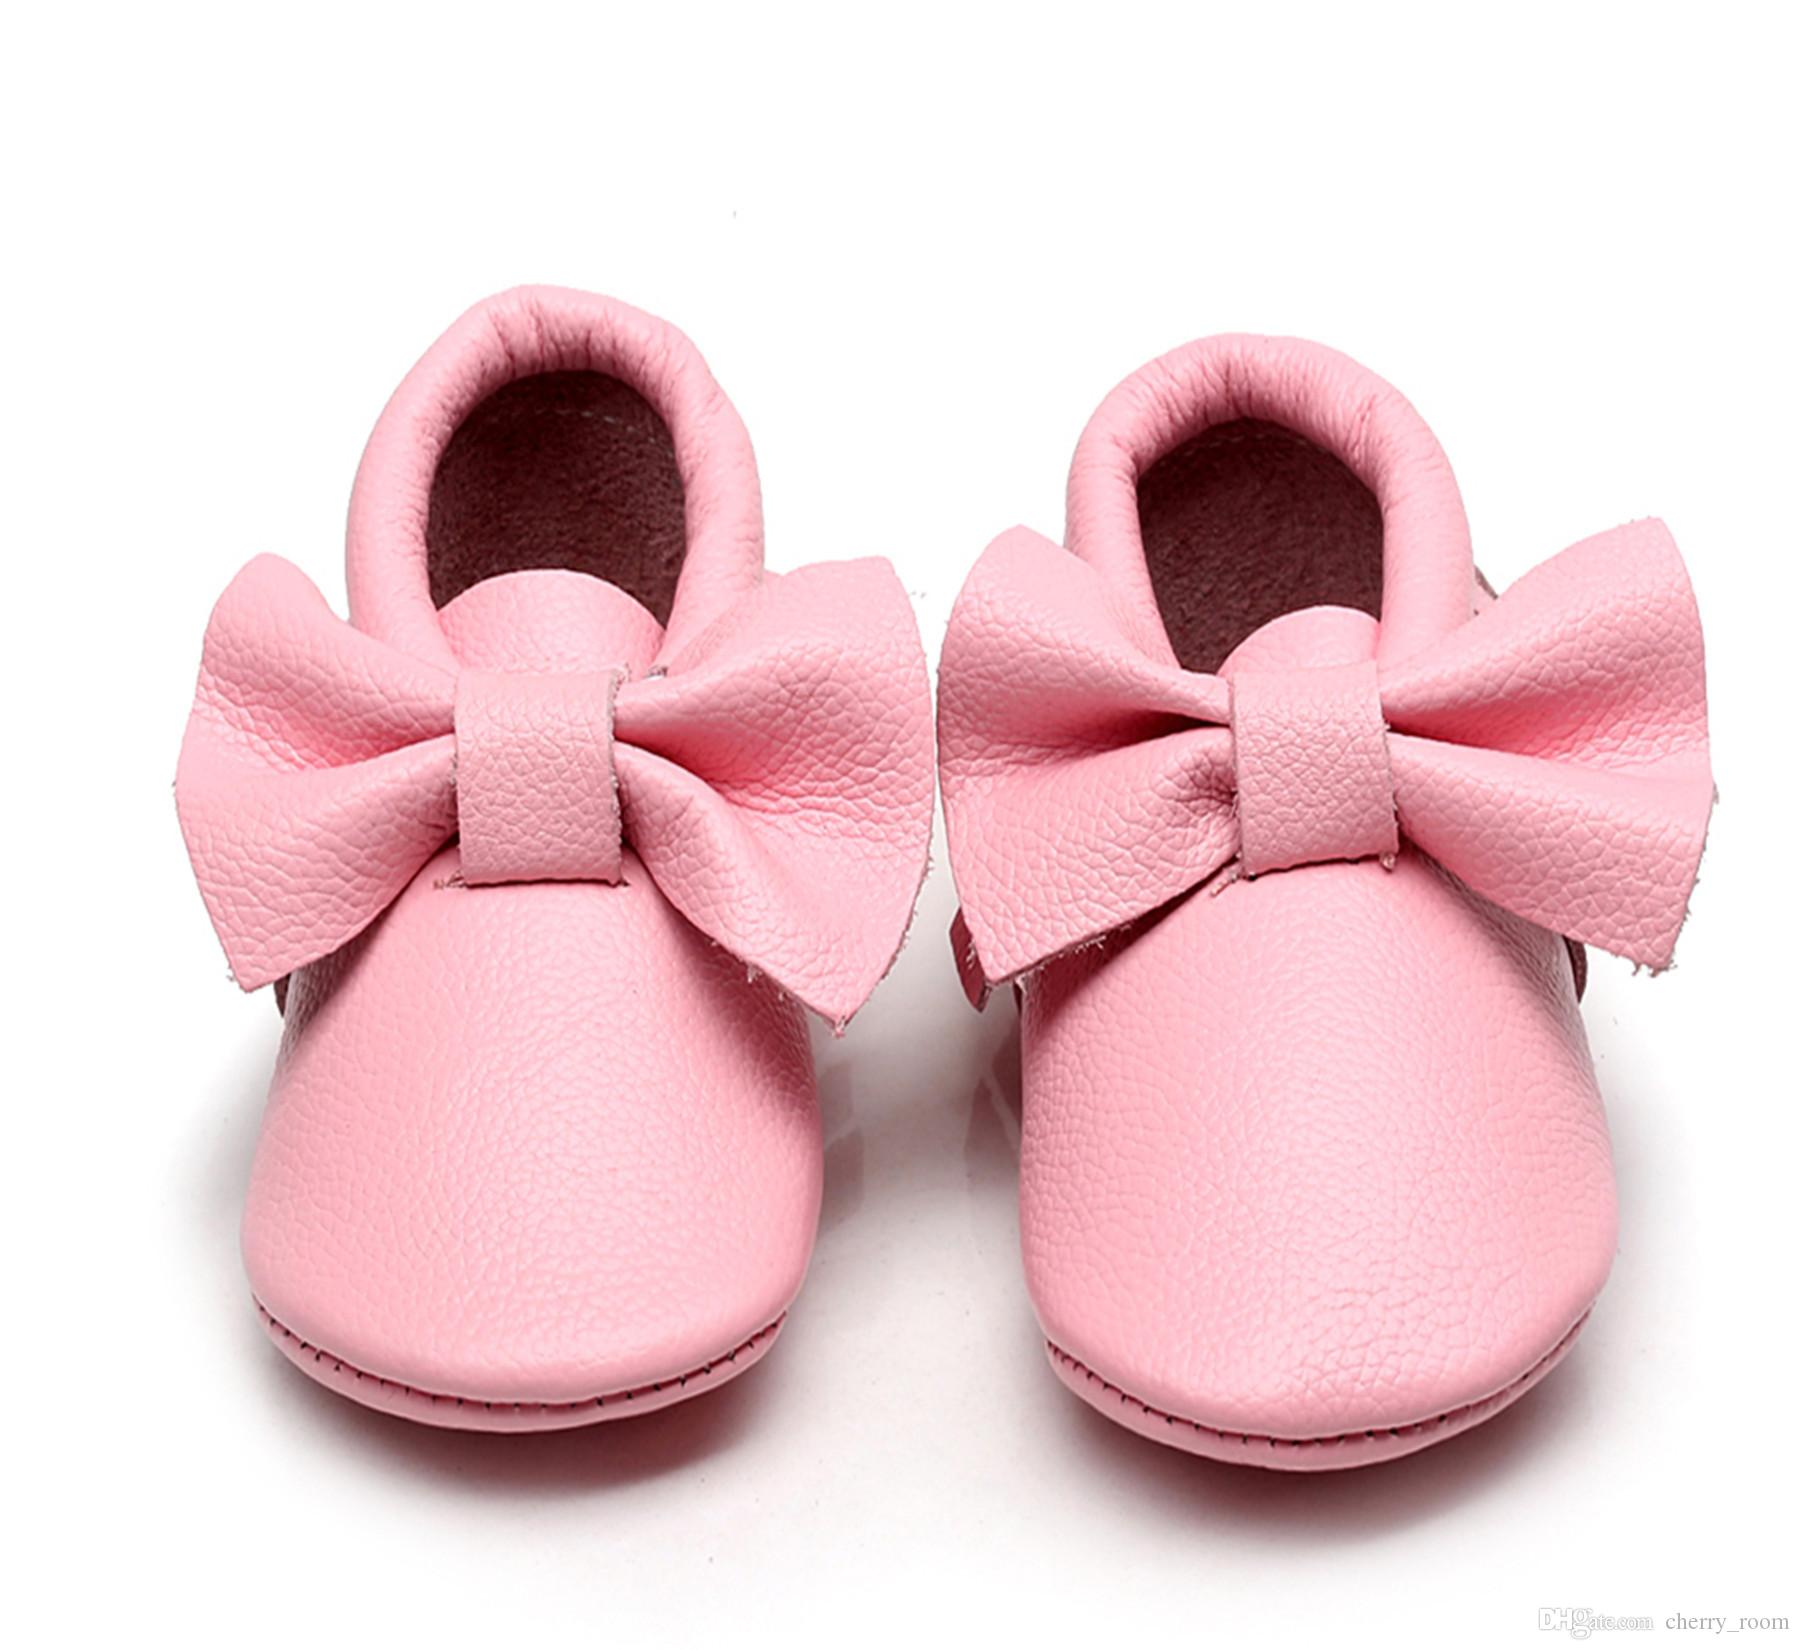 b6cfa83a20ed43 2019 New 0 18M Newborn Infant Baby Girl Bowknot Cute Fashion Soft PU Leather  Anti Slip First Walker Prewalker Toddler Girl Shoes Pink A8515 From  Cherry room ...